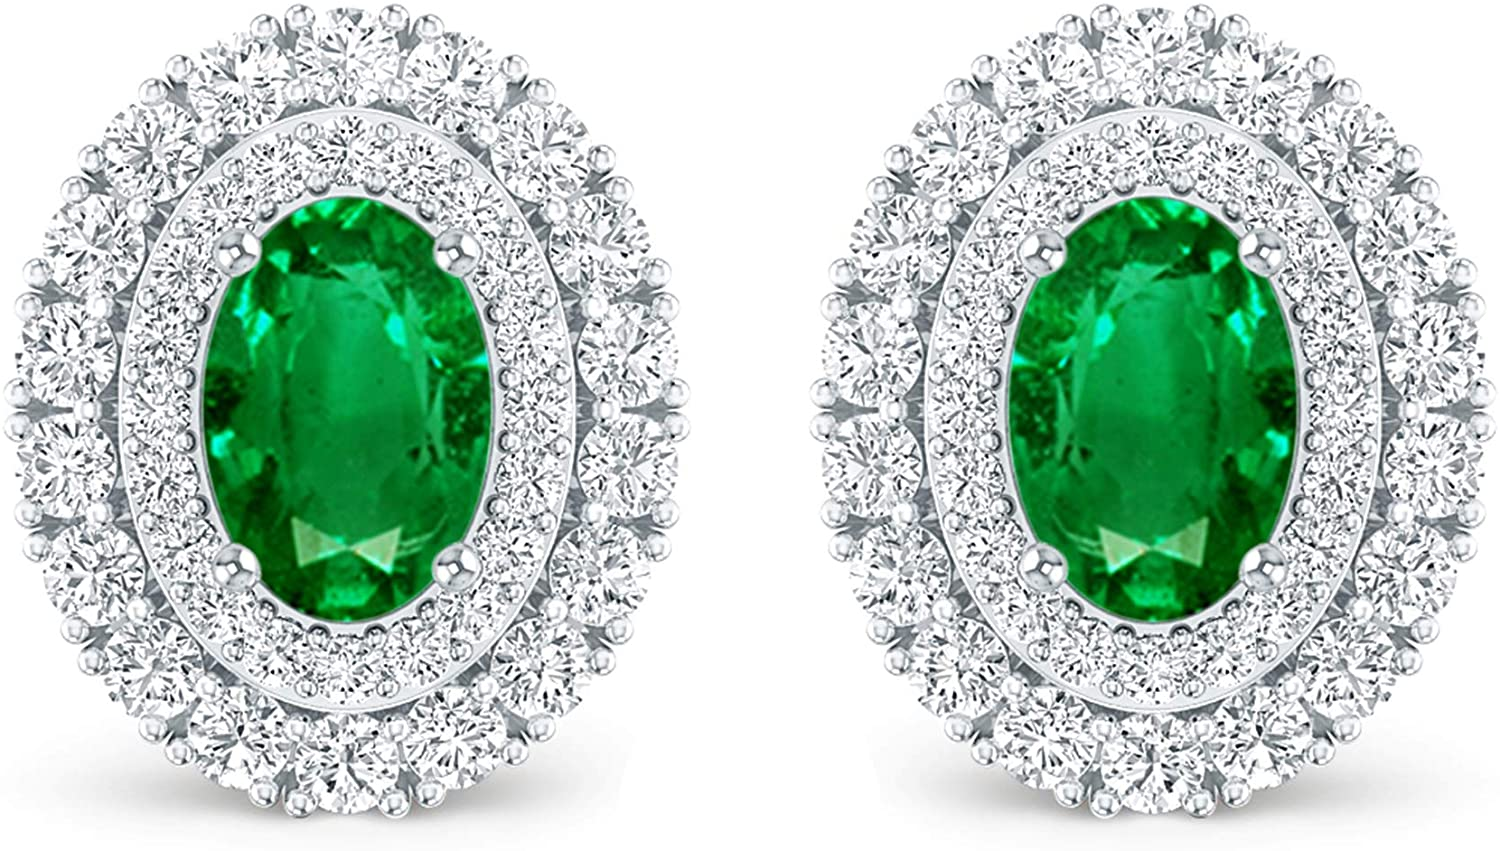 Inspereza Oval Gemstone and White Diamond Double Halo stud Earring in 14kt Gold (6X4 MM Gemstone)